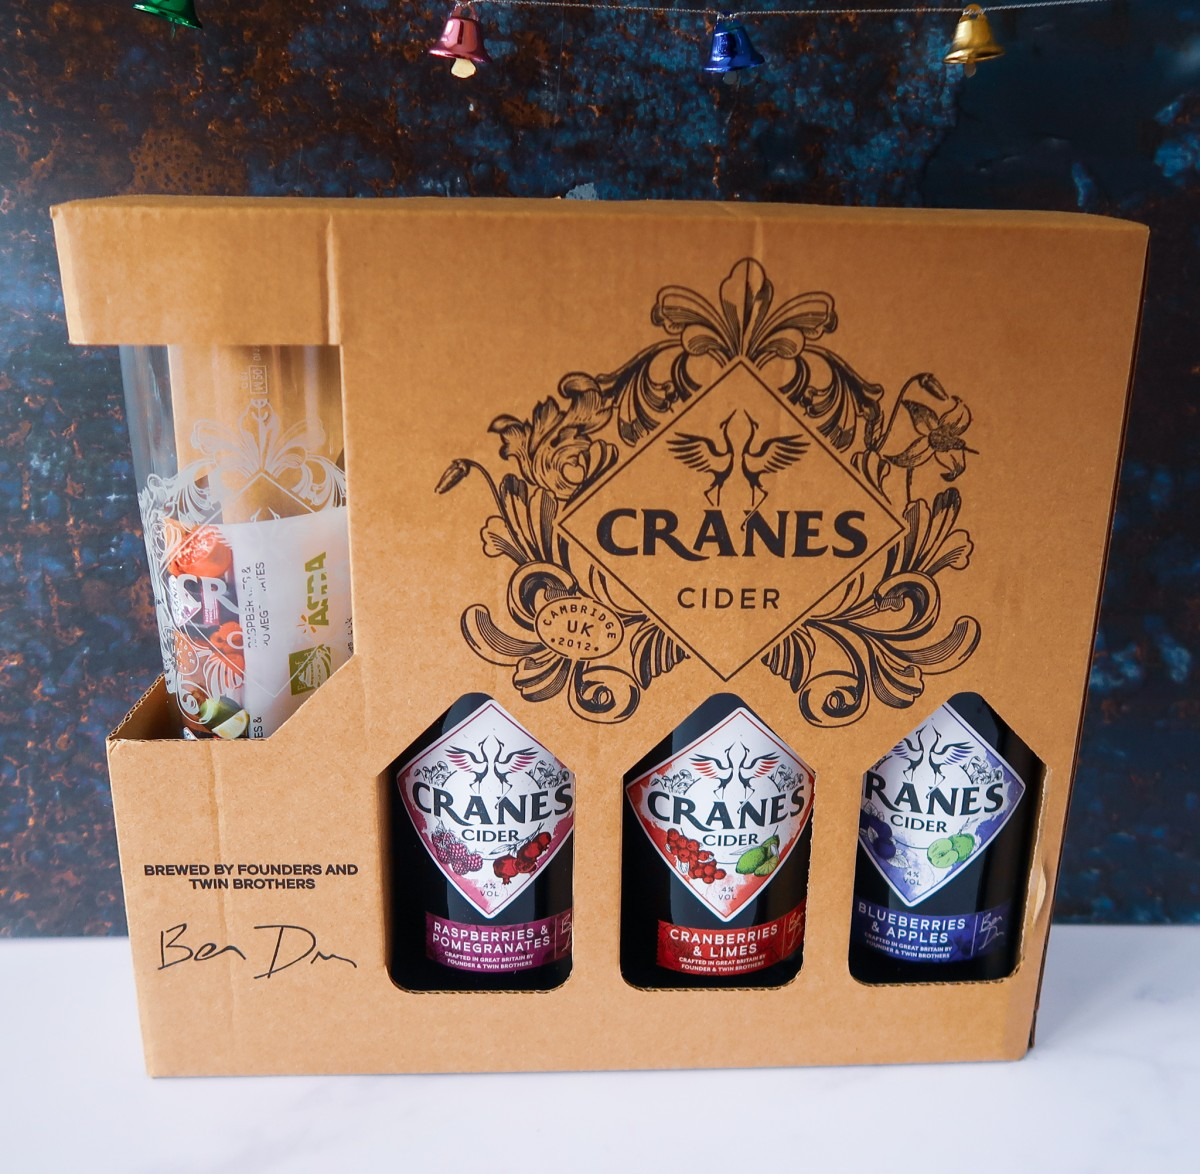 Cranes Cider Set with 3 bottles of Crane's Cider and a cider glass in a decorative box